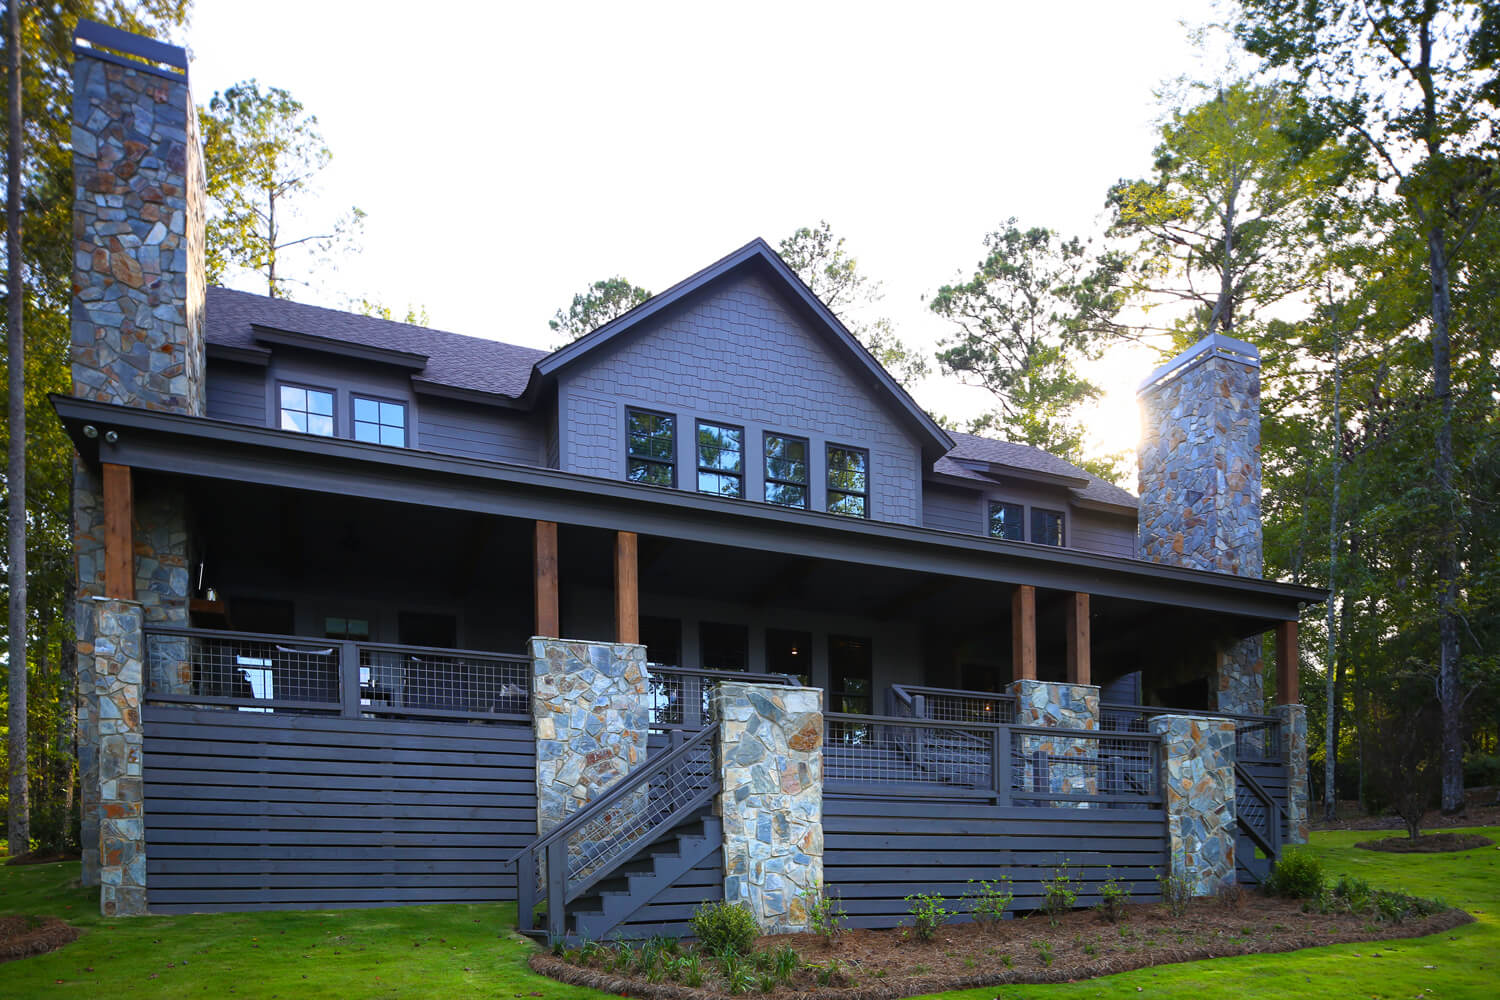 Lake Martin Cabin - Front Perspective - Designed by Foshee Architecture